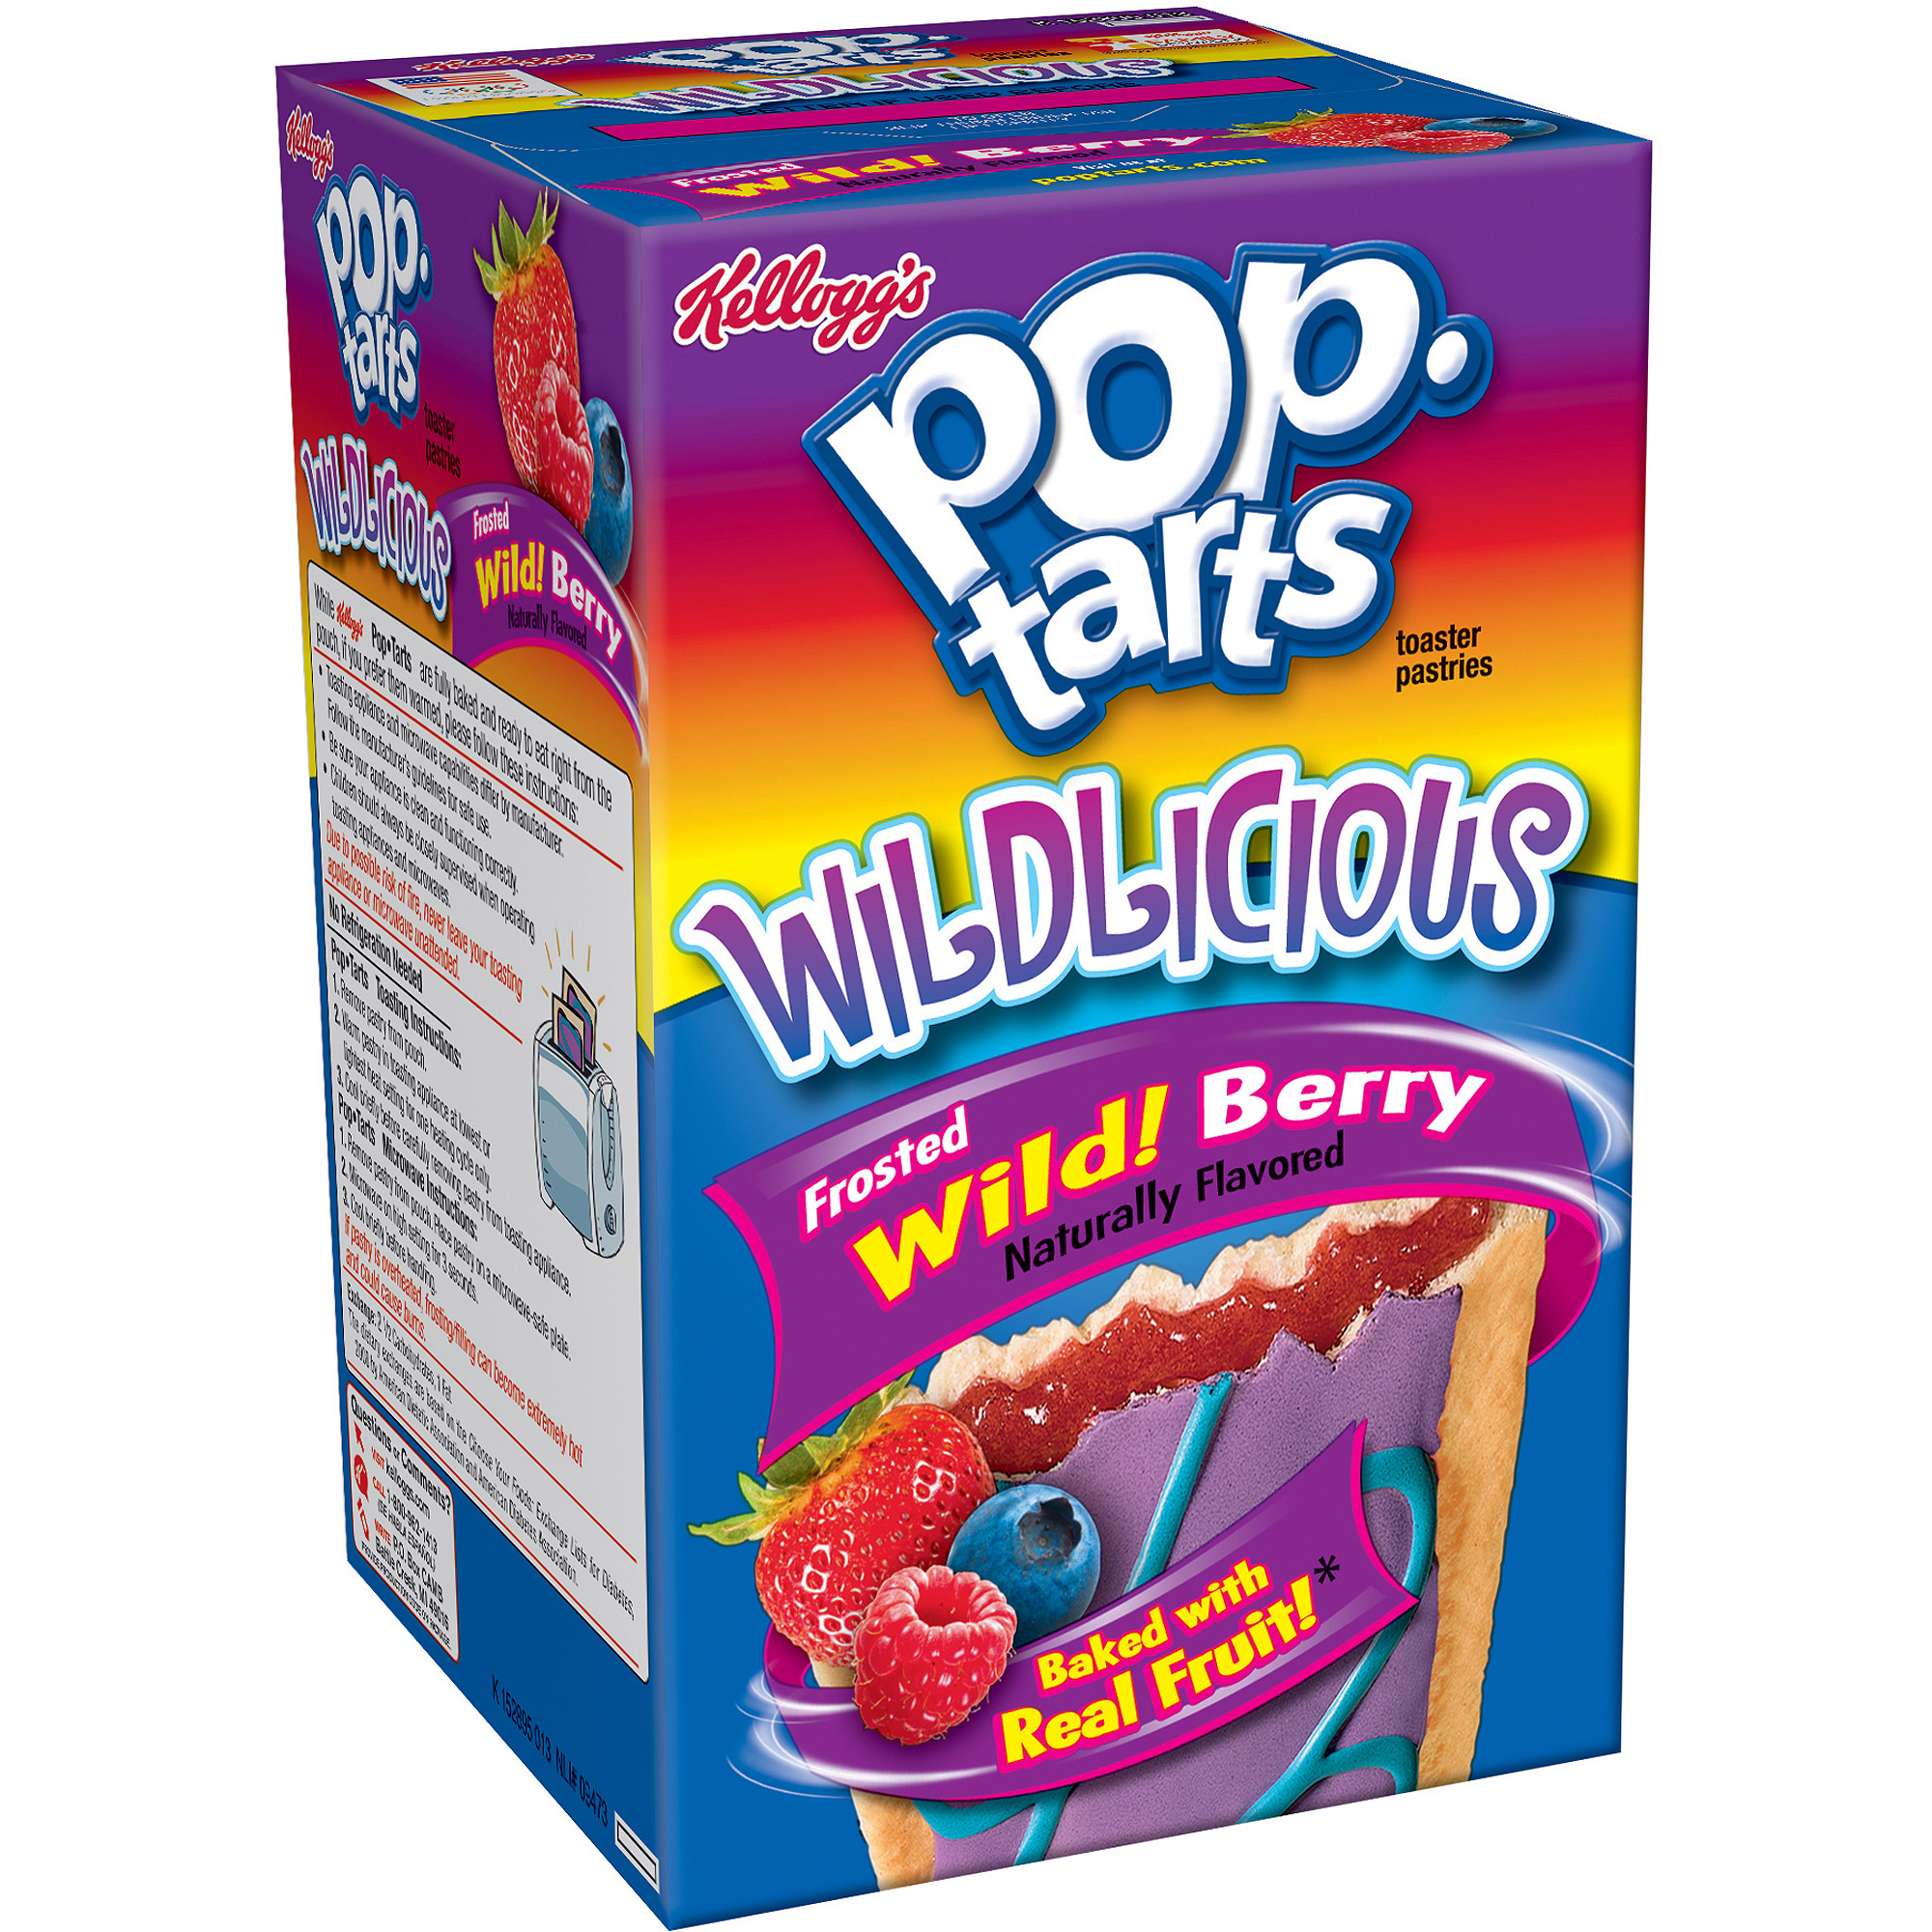 Kellogg's Pop-Tarts Frosted Wild Berry, 8 ct